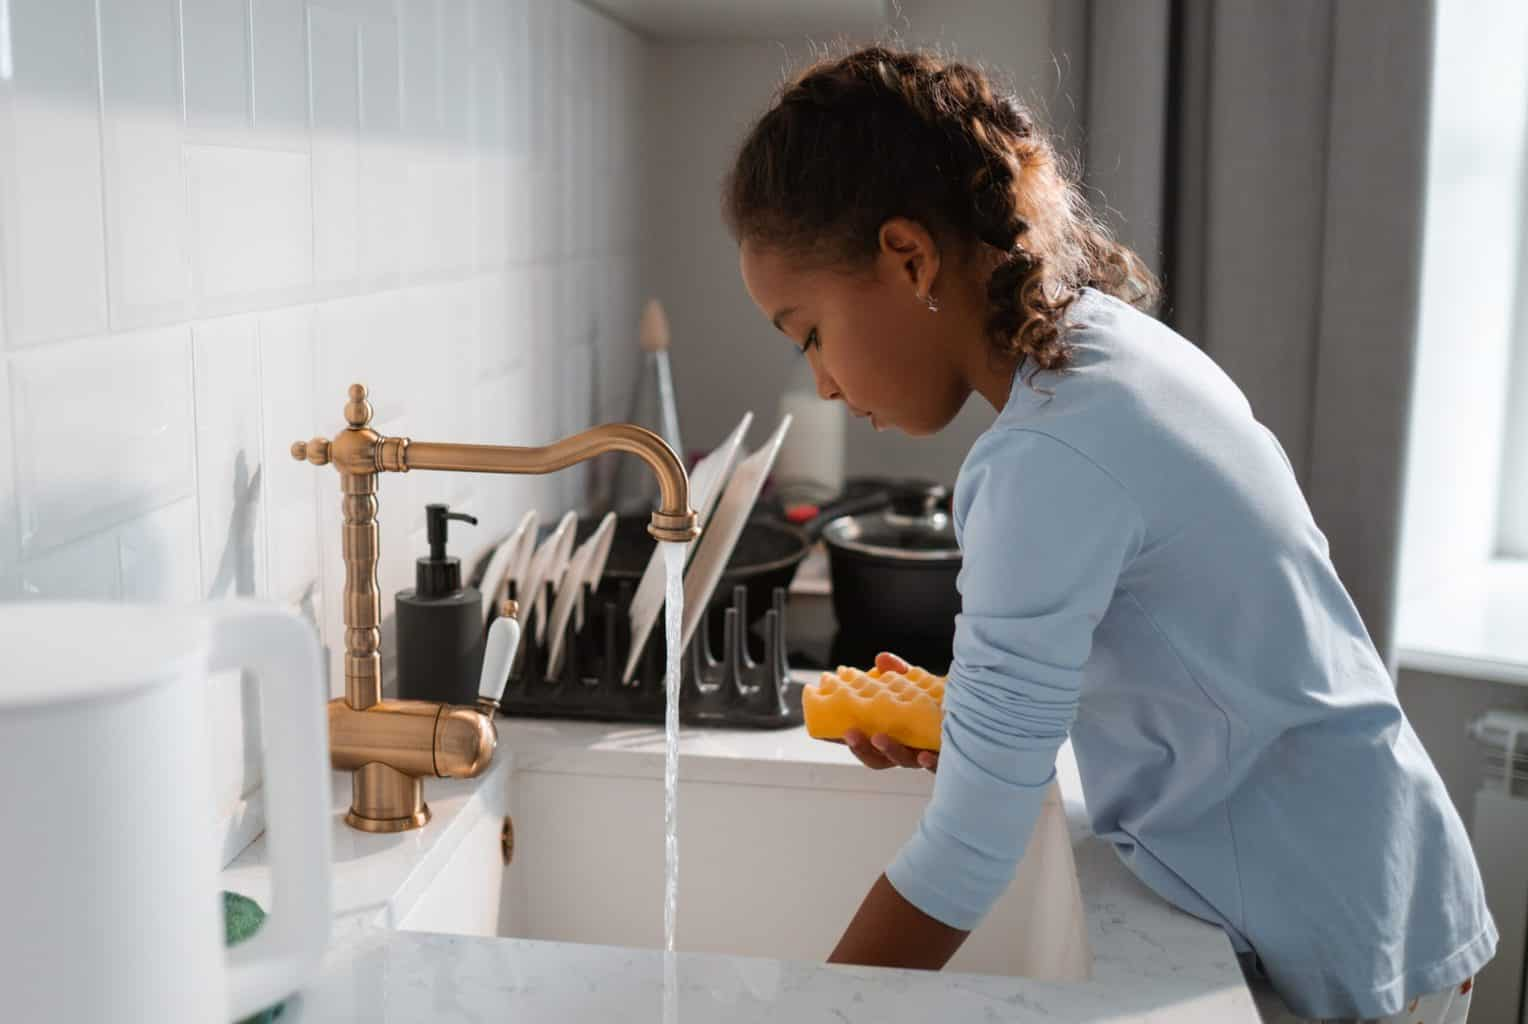 A child washing on the sink